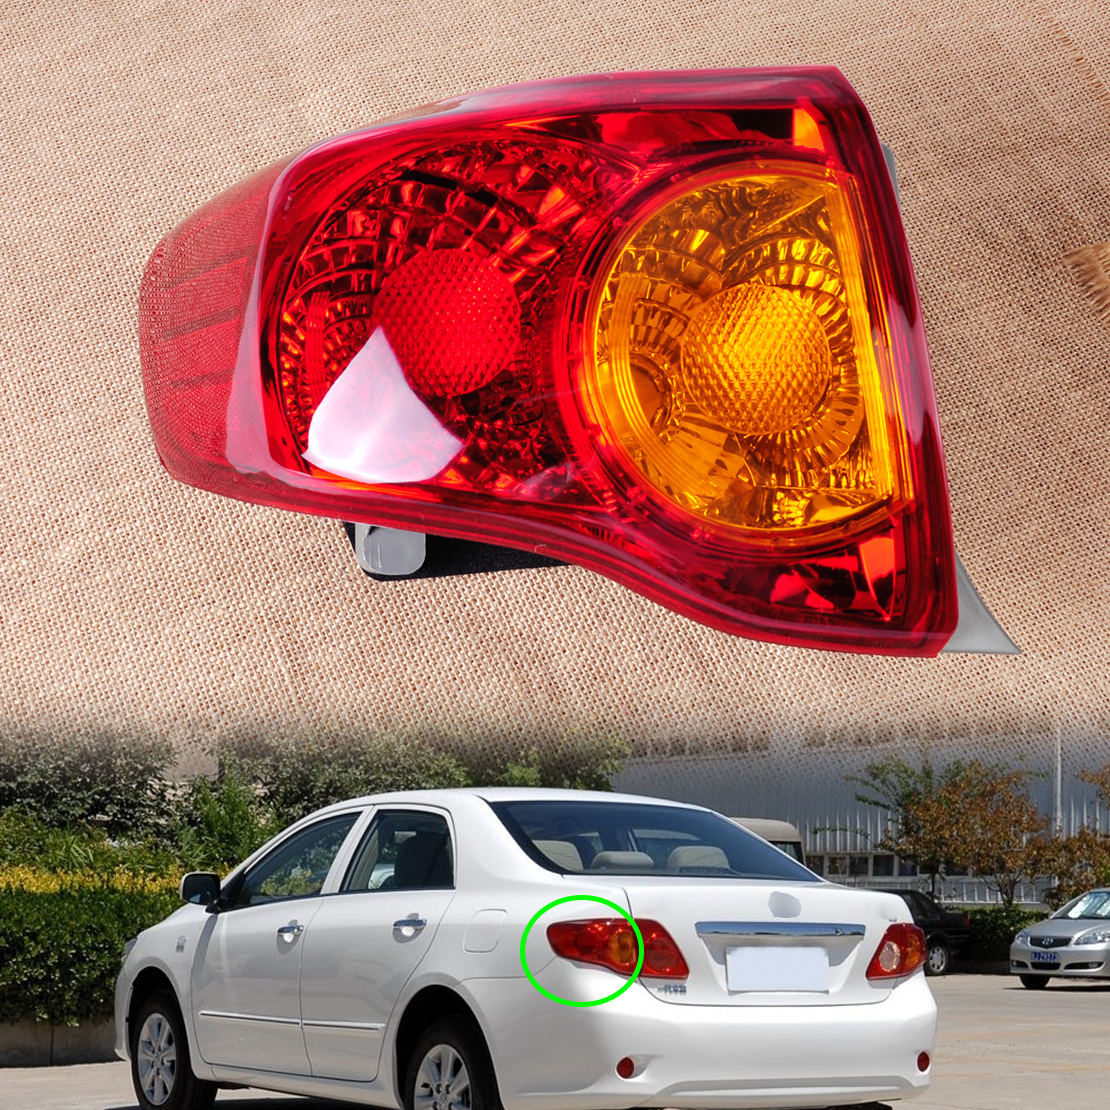 Citall to2800175 166 50863l rear left tail light taillight hoods assembly driver side brake light for toyota corolla 2009 2010